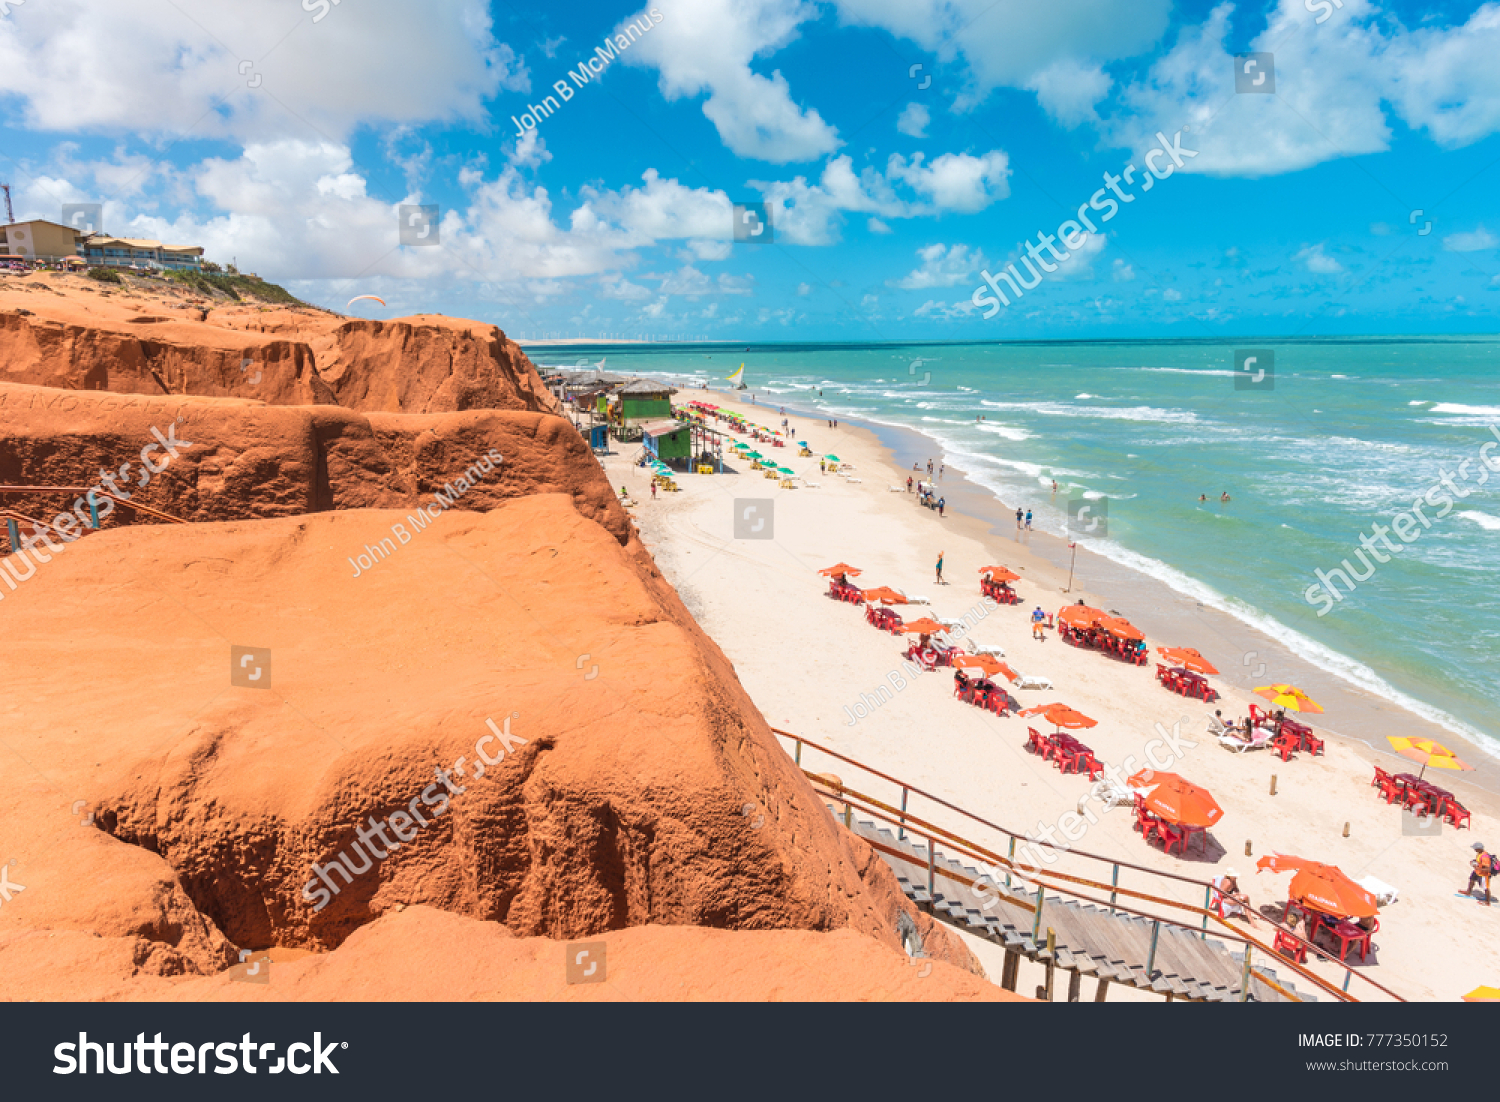 canoa quebrada beach scenes stock photo (edit now) 777350152